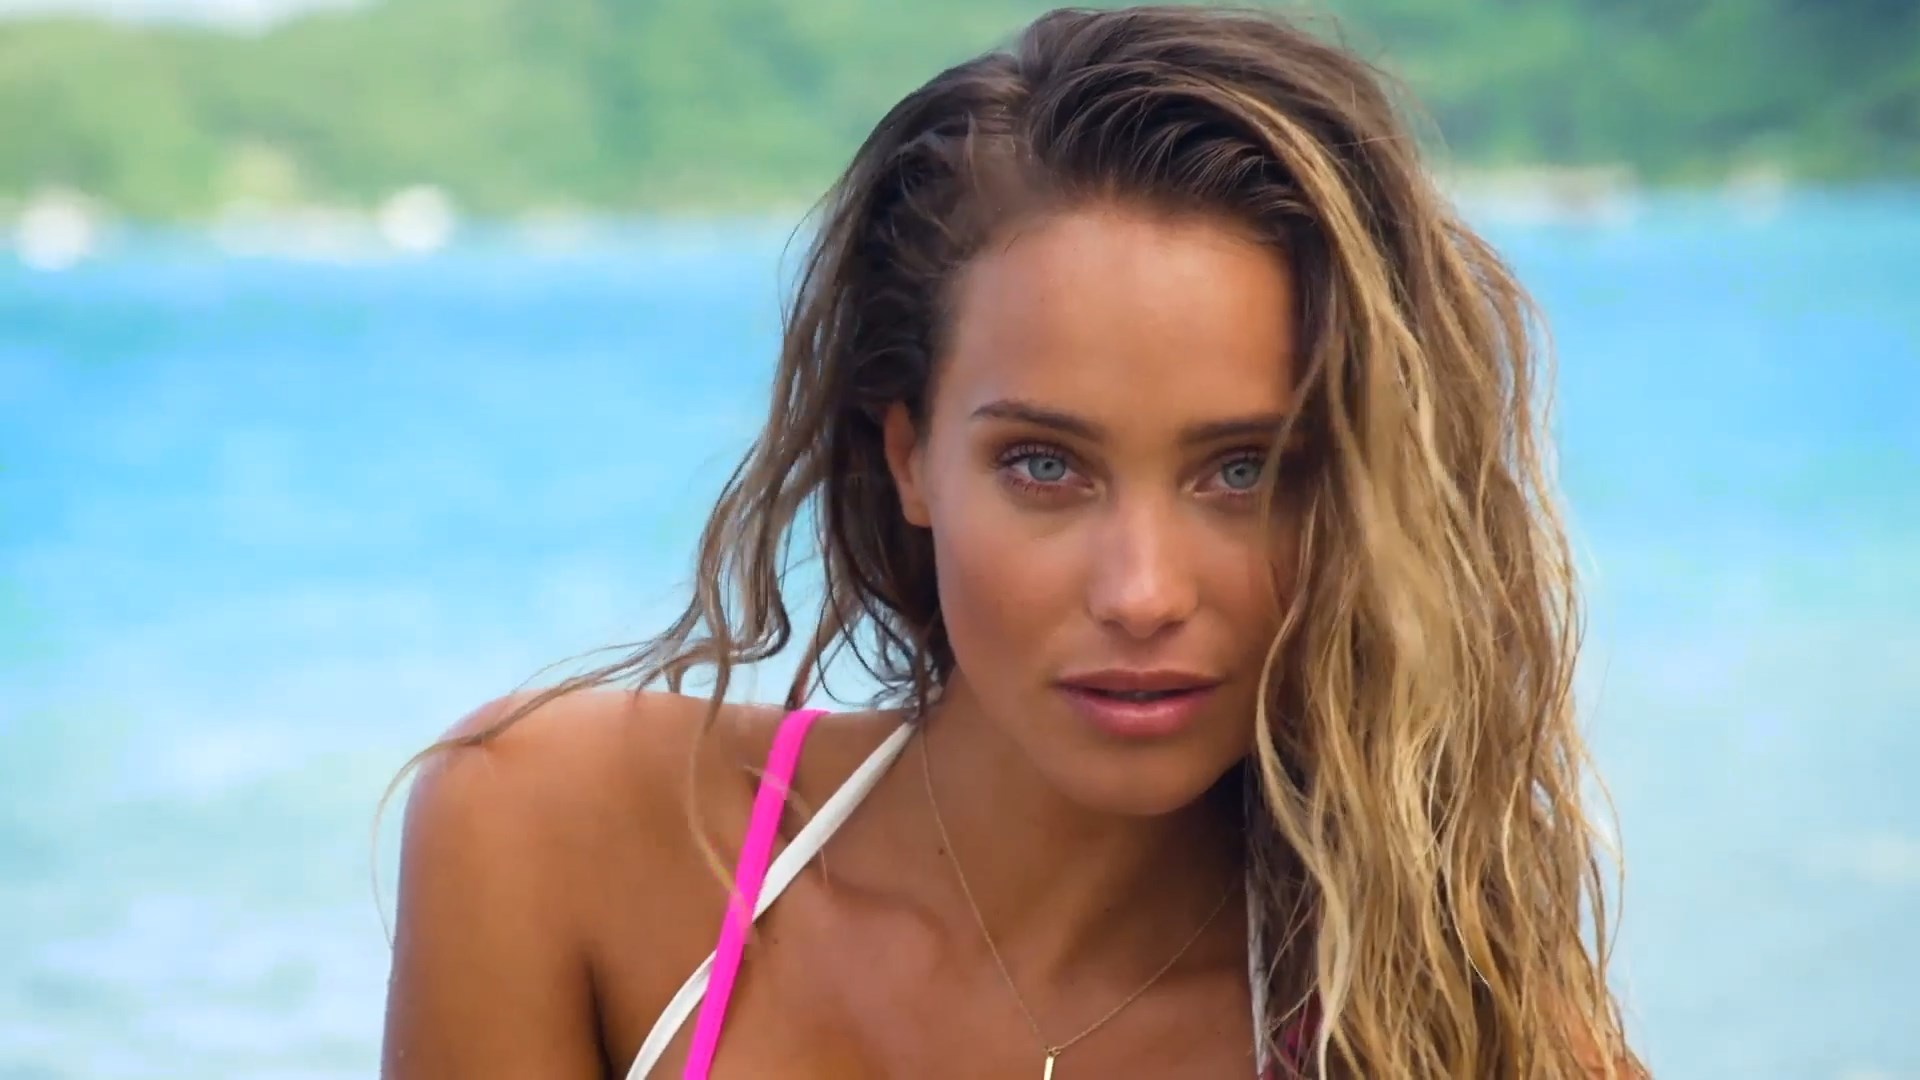 Hannah Davis Wallpapers Images Photos Pictures Backgrounds